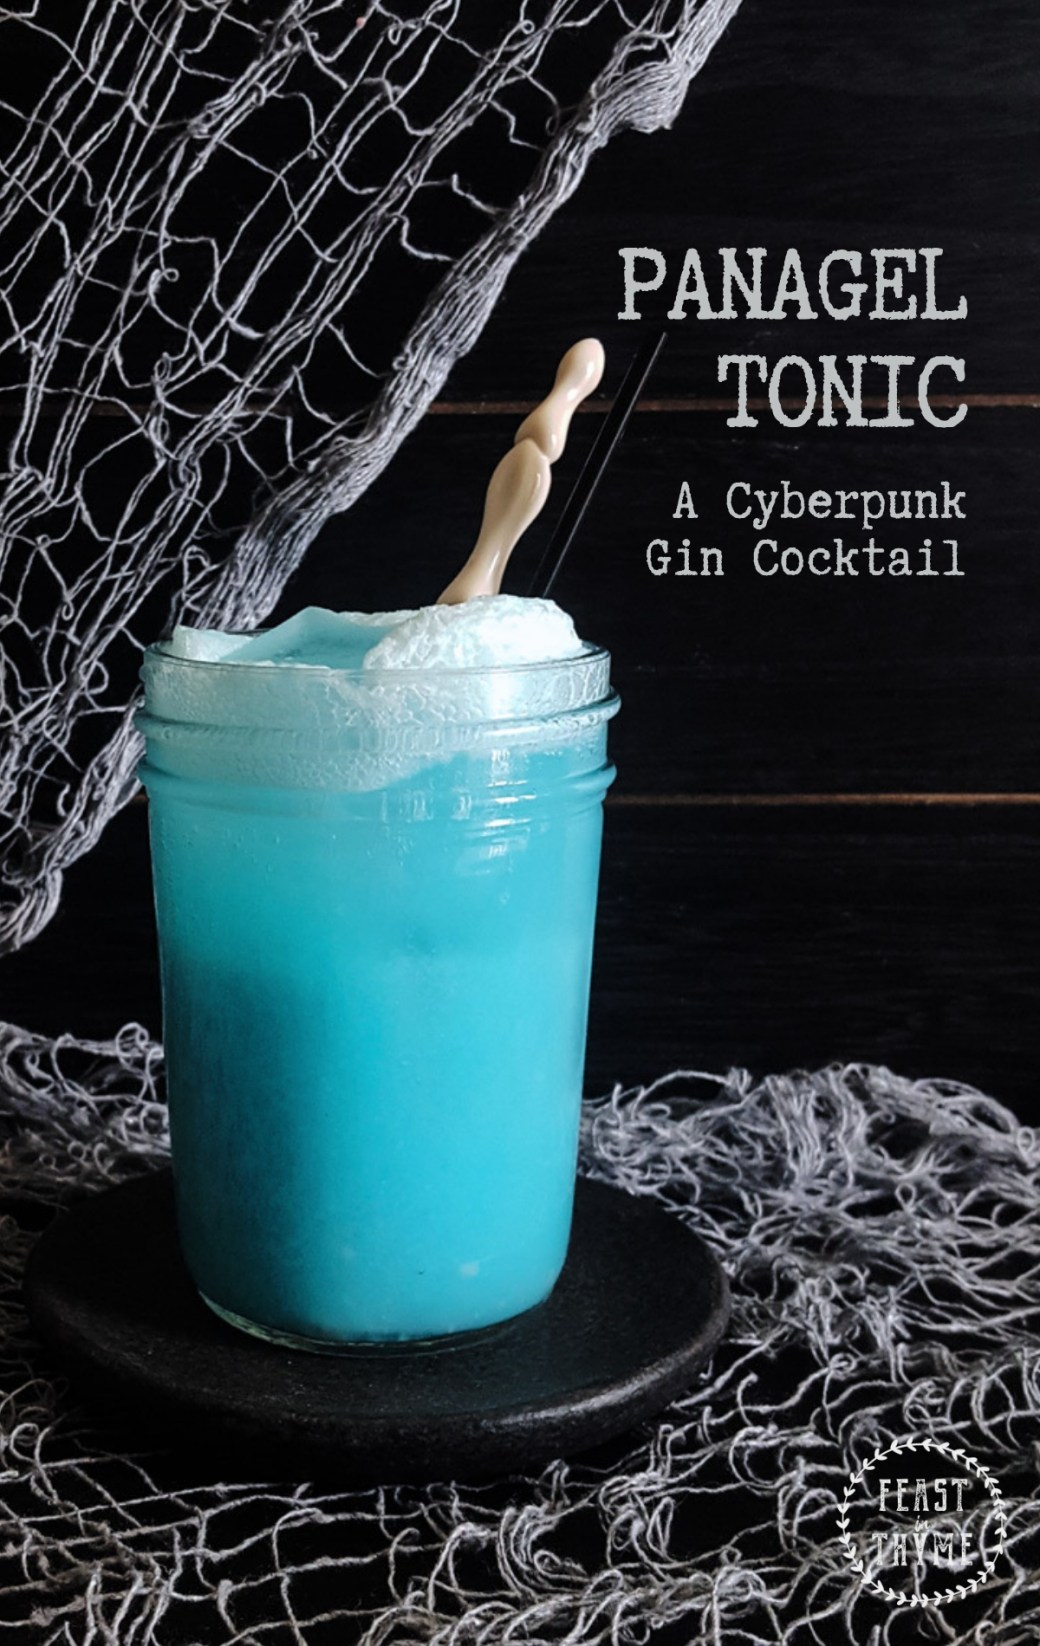 The PanaGEL Tonic | A Cyberpunk Gin Cocktail